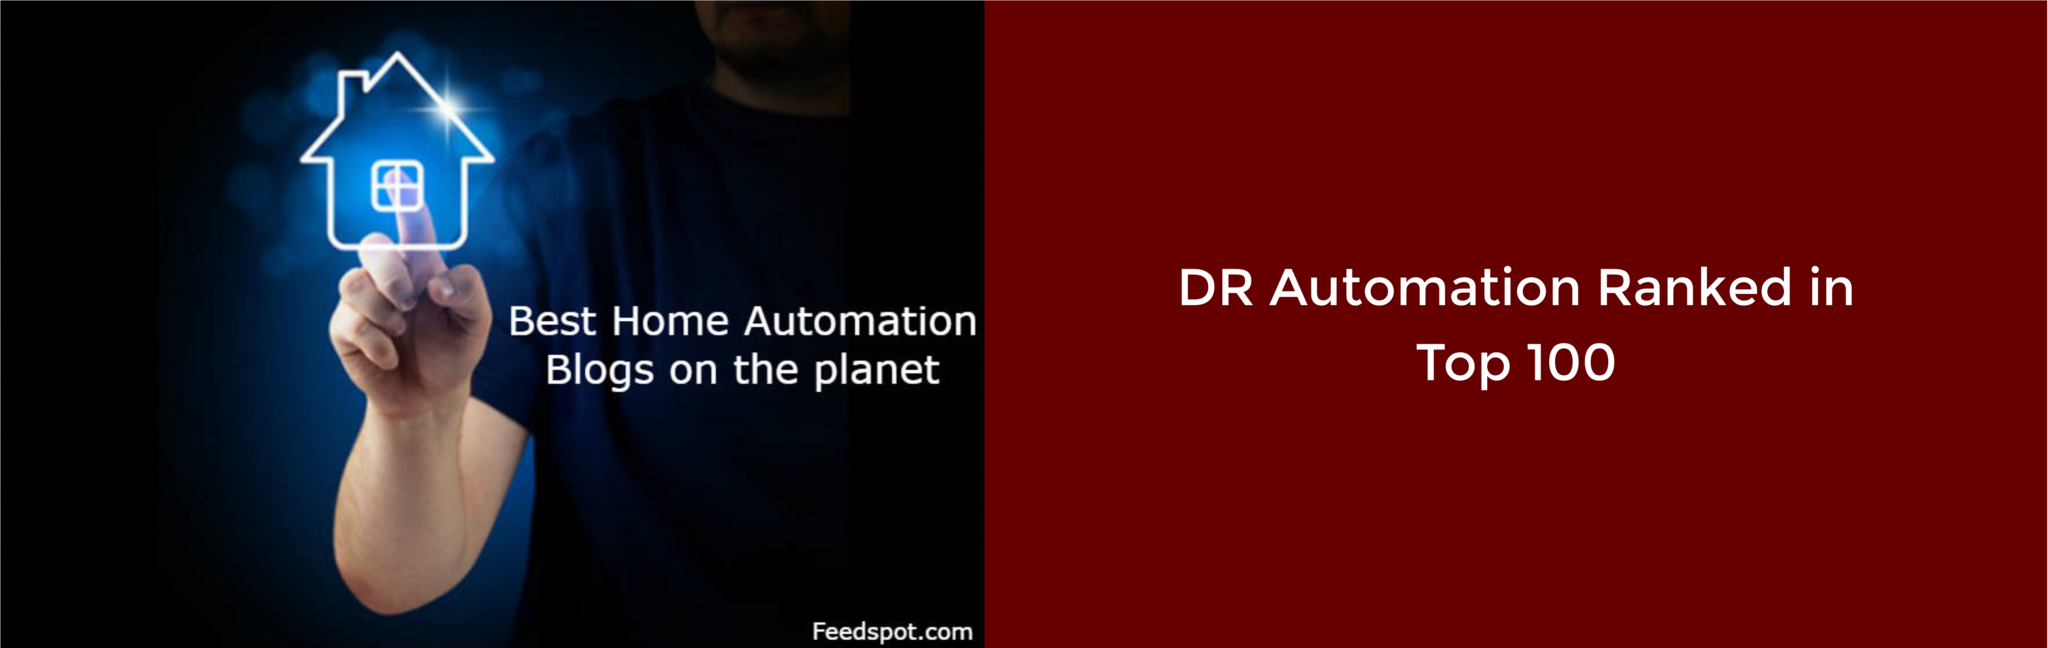 DR Automation Ranked in the Top 100 Home Automation Blogs